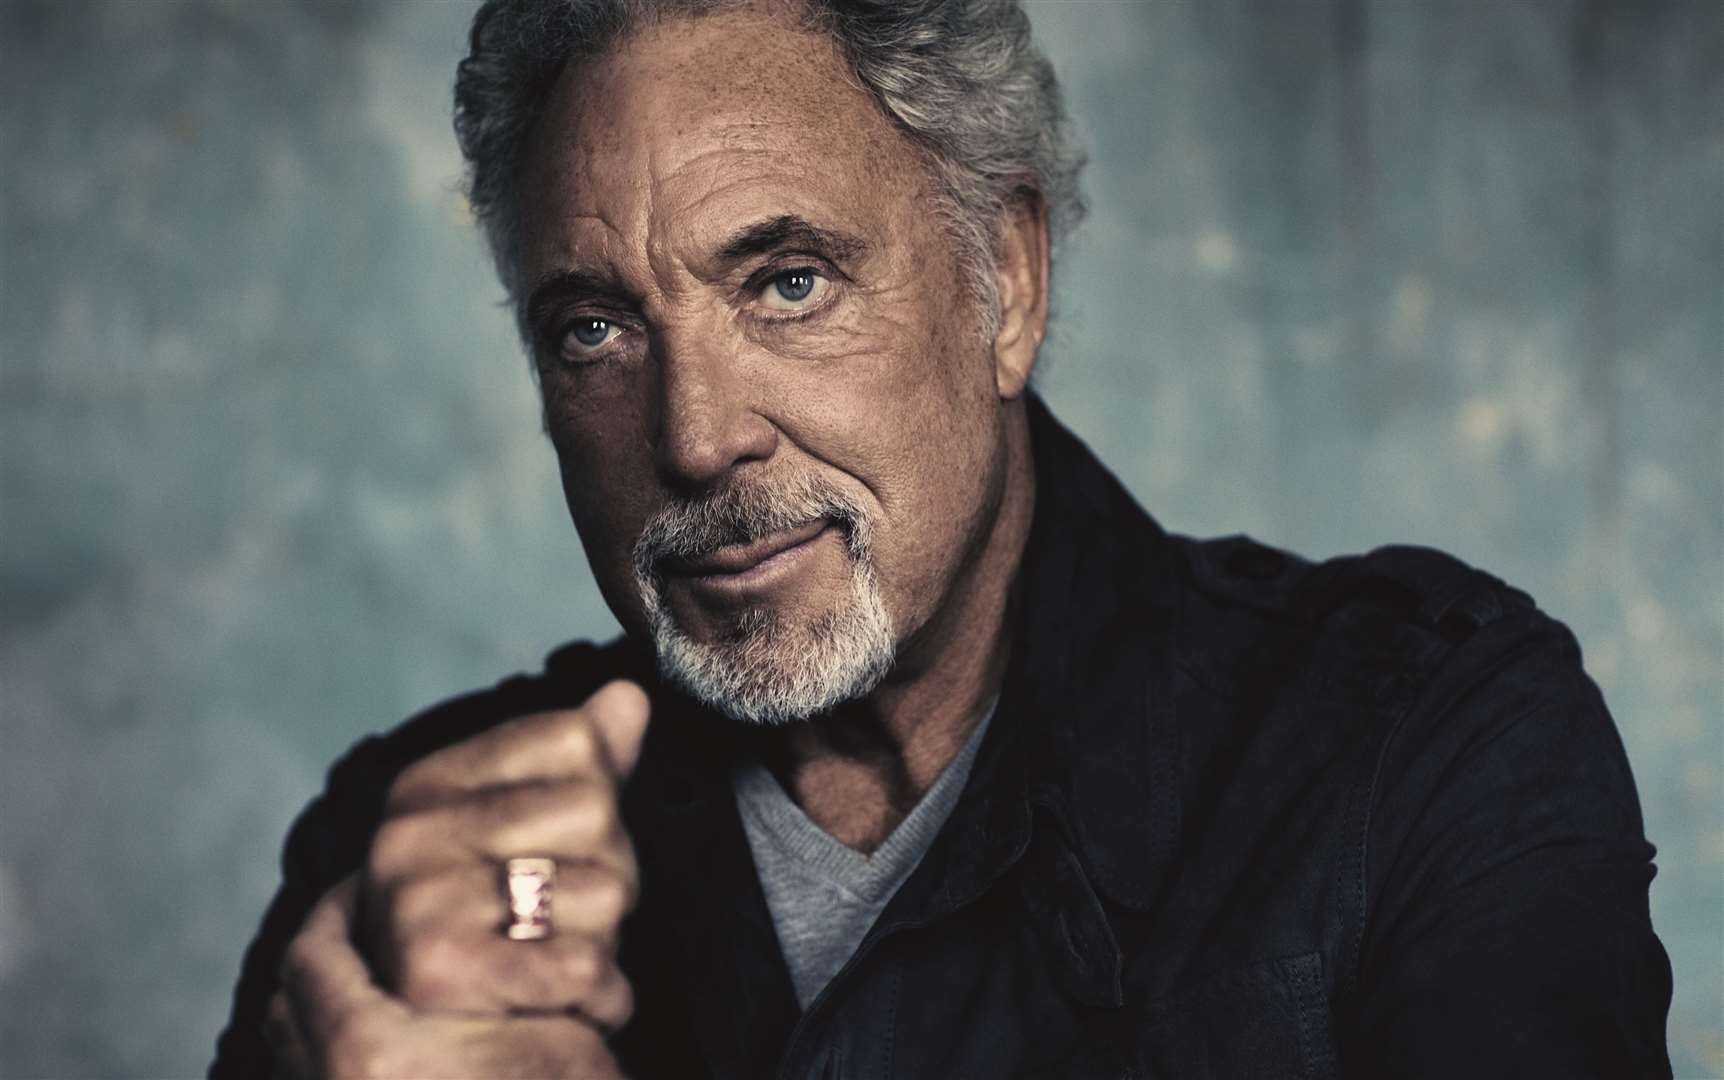 Welsh icon Tom Jones is set to return to headline Newmarket Nights later in the year, it has been announced.